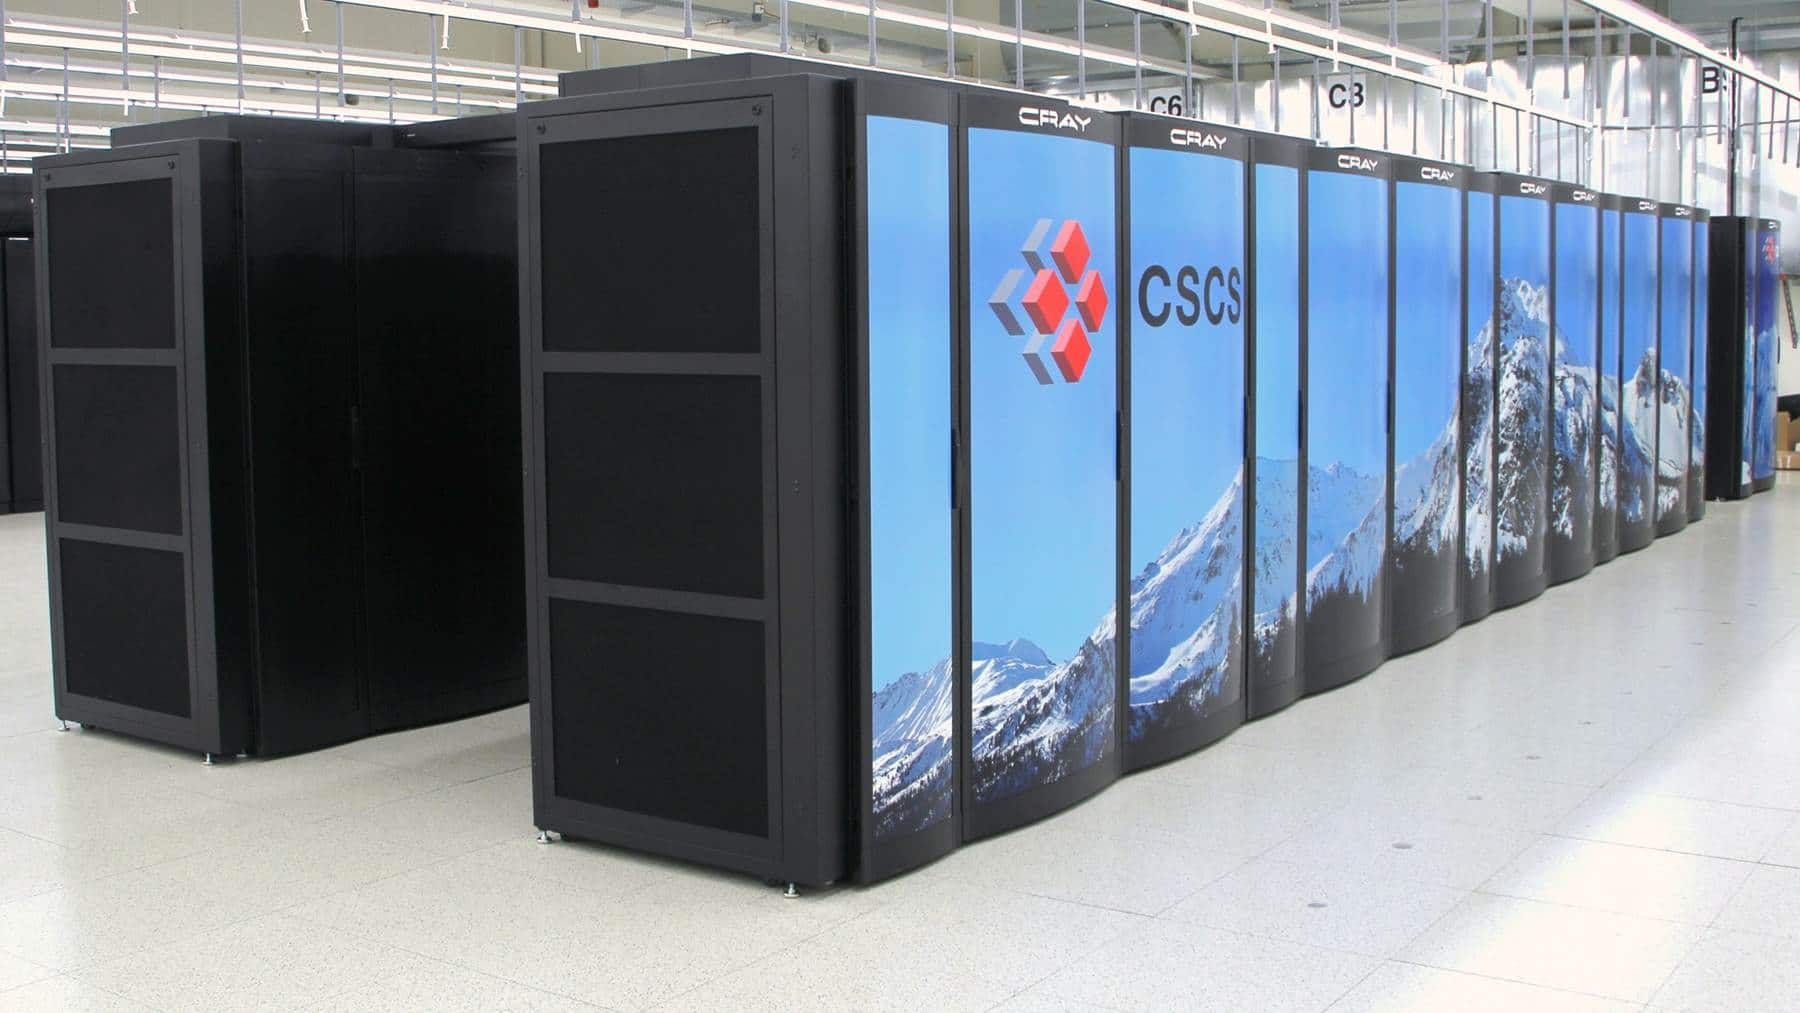 Most Powerful Supercomputers in the World - Image 5